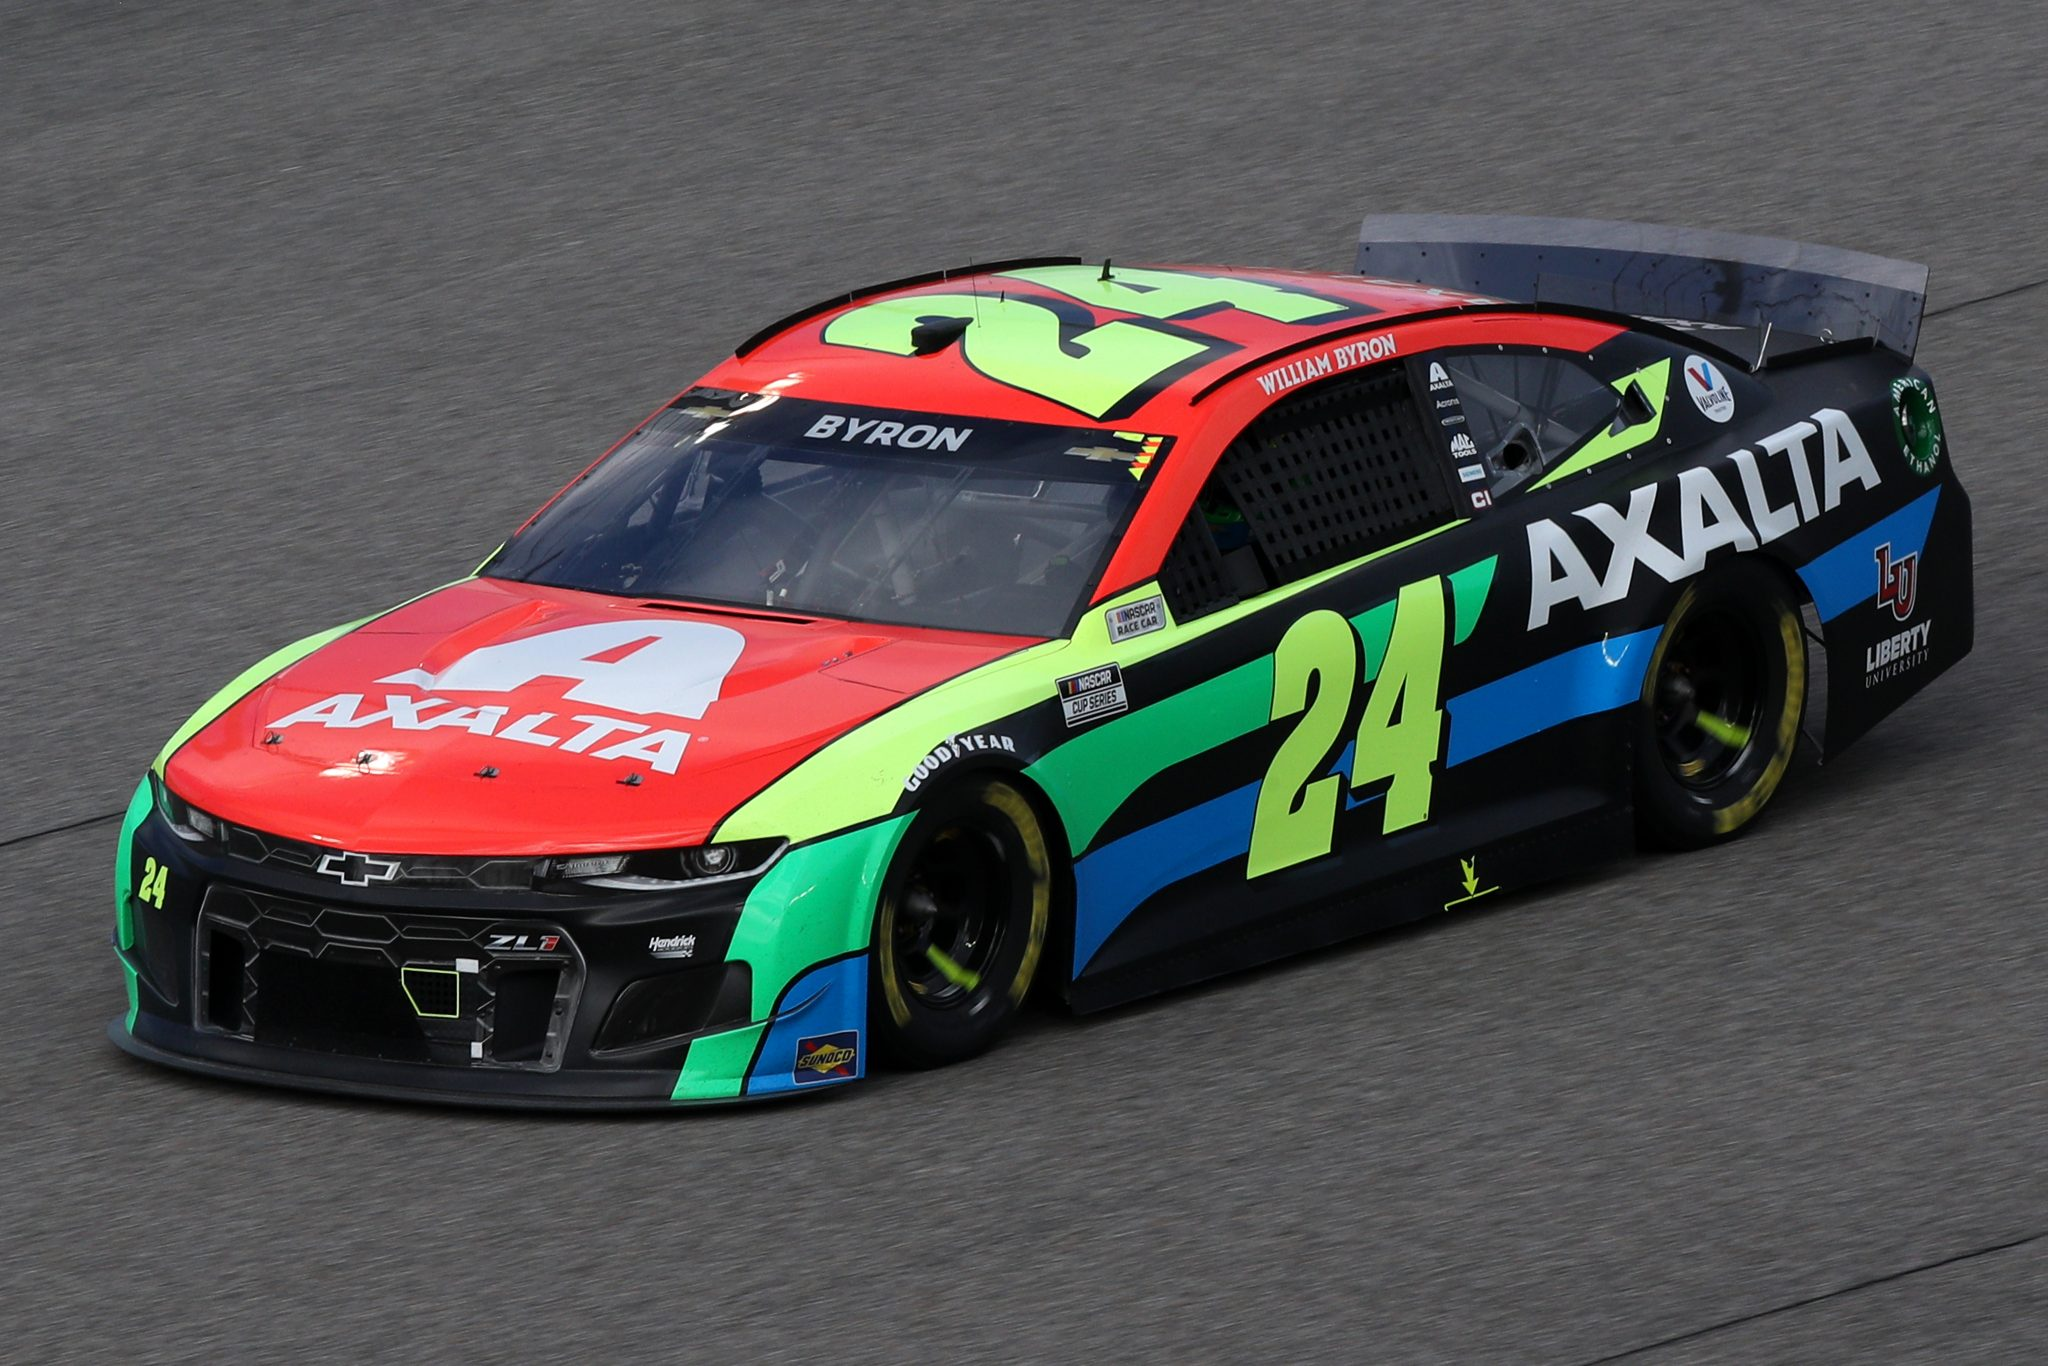 HOMESTEAD, FLORIDA - FEBRUARY 28: William Byron, driver of the #24 Axalta Chevrolet, drives during the NASCAR Cup Series Dixie Vodka 400 at Homestead-Miami Speedway on February 28, 2021 in Homestead, Florida. (Photo by Sean Gardner/Getty Images) | Getty Images